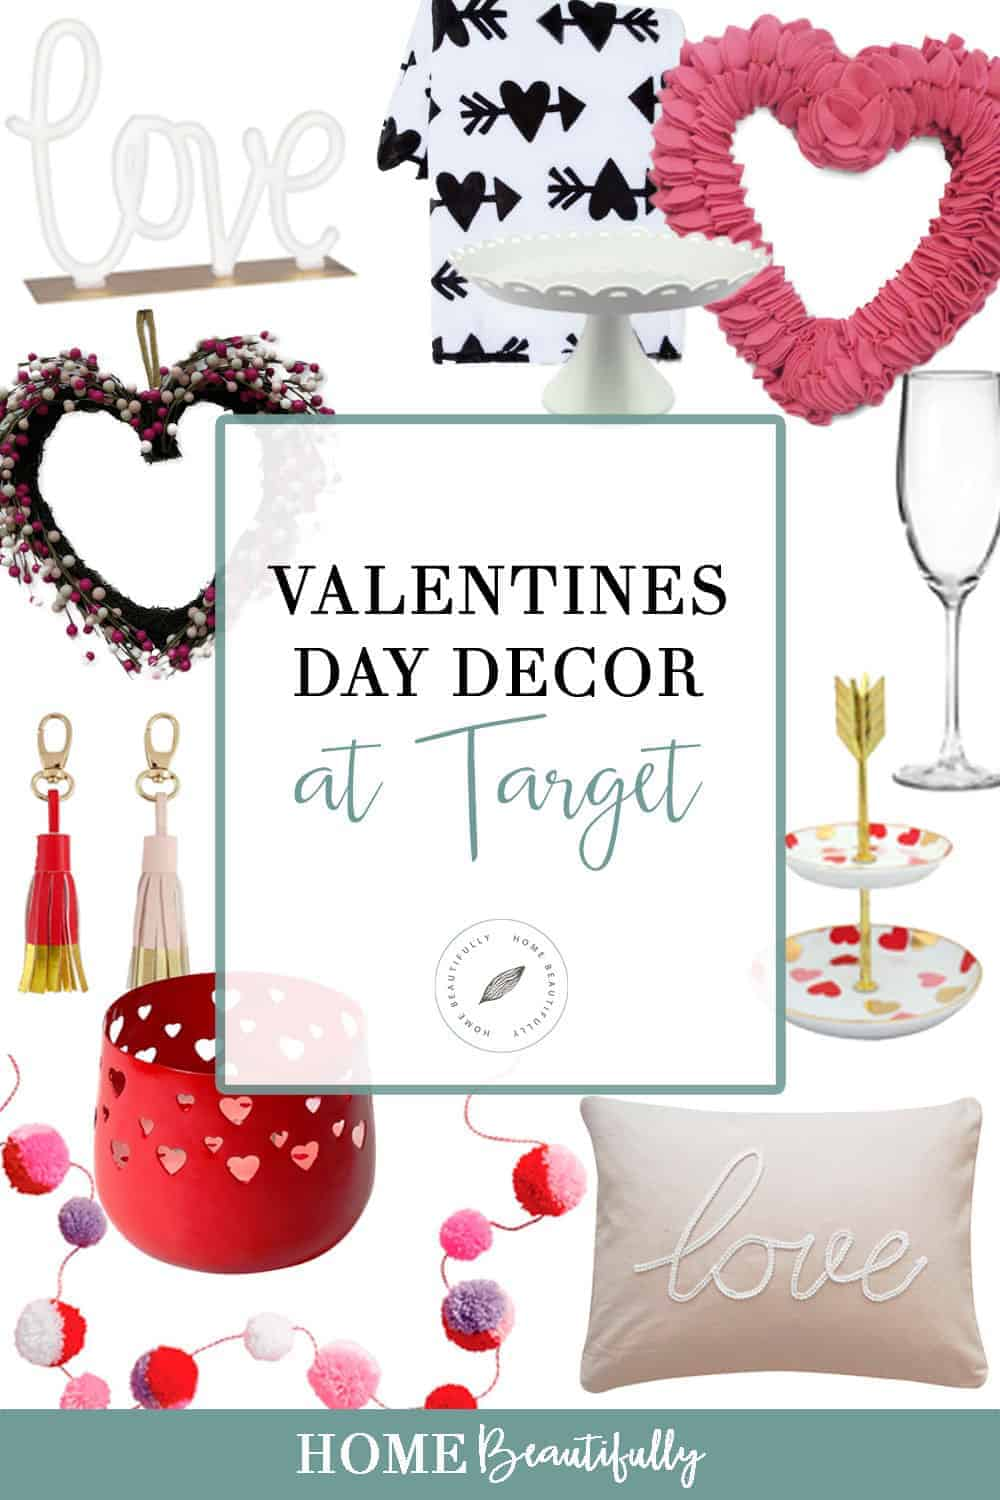 The cutest valentines day decor at target you can find for Valentine day at home